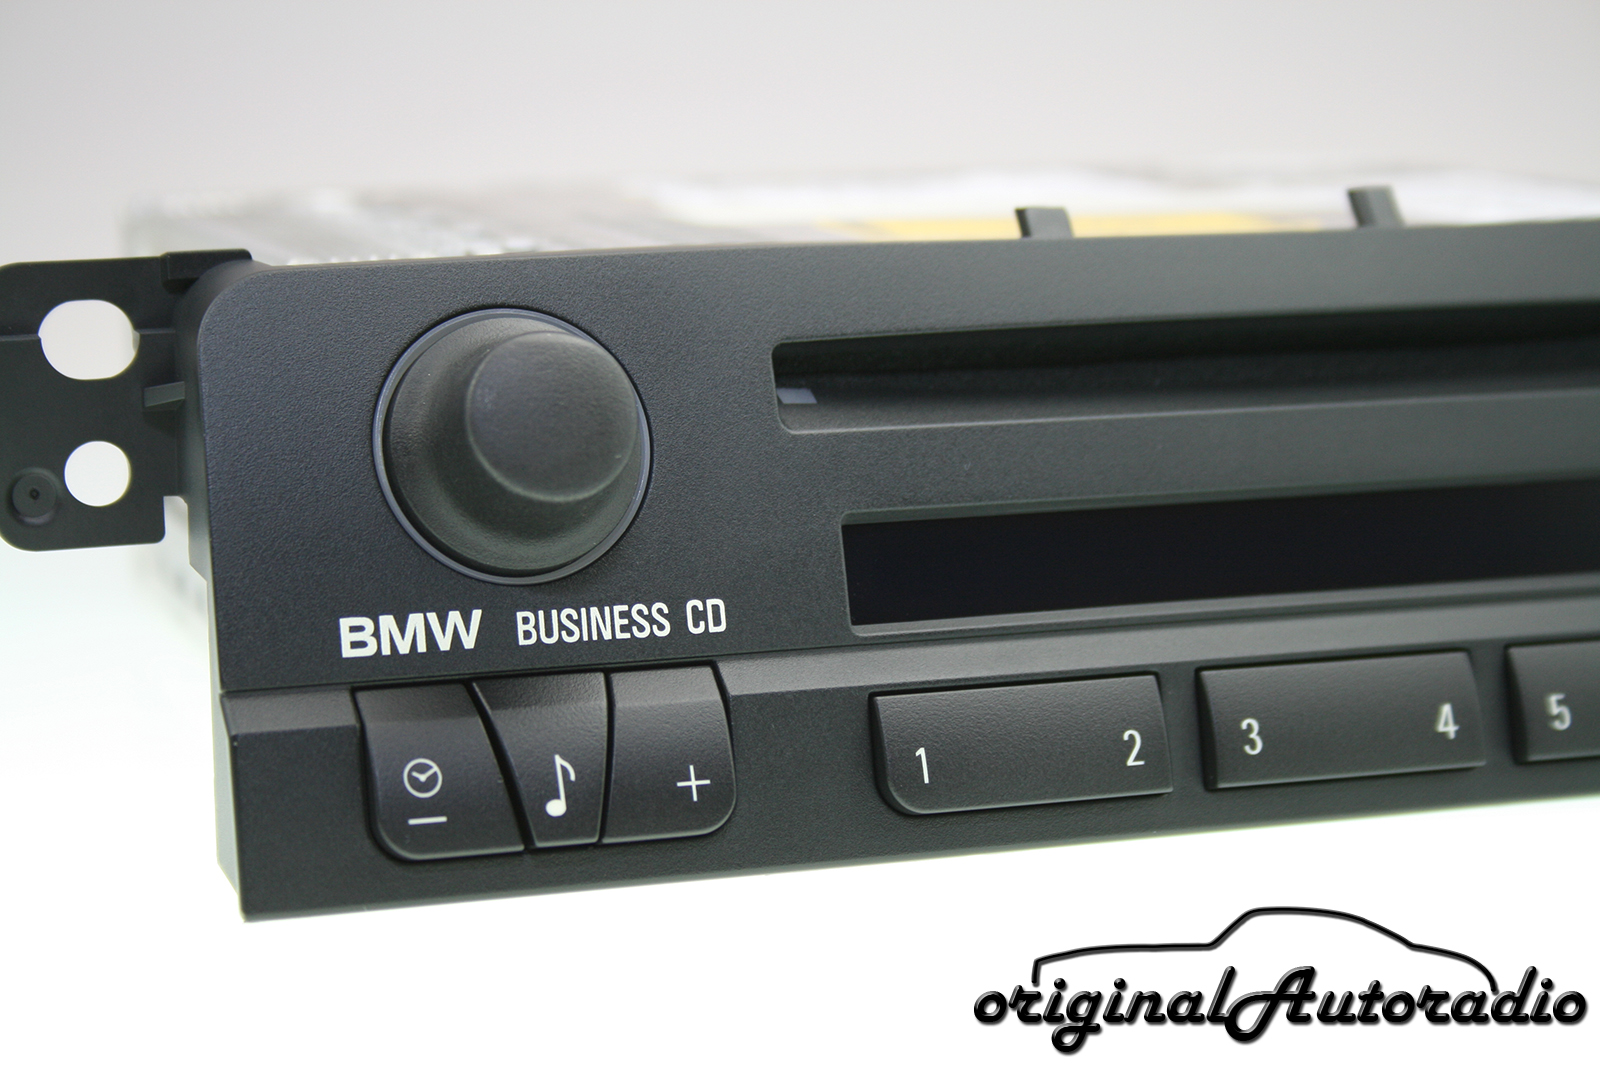 Bmw Business Radio Set Clock – Wonderful Image Gallery